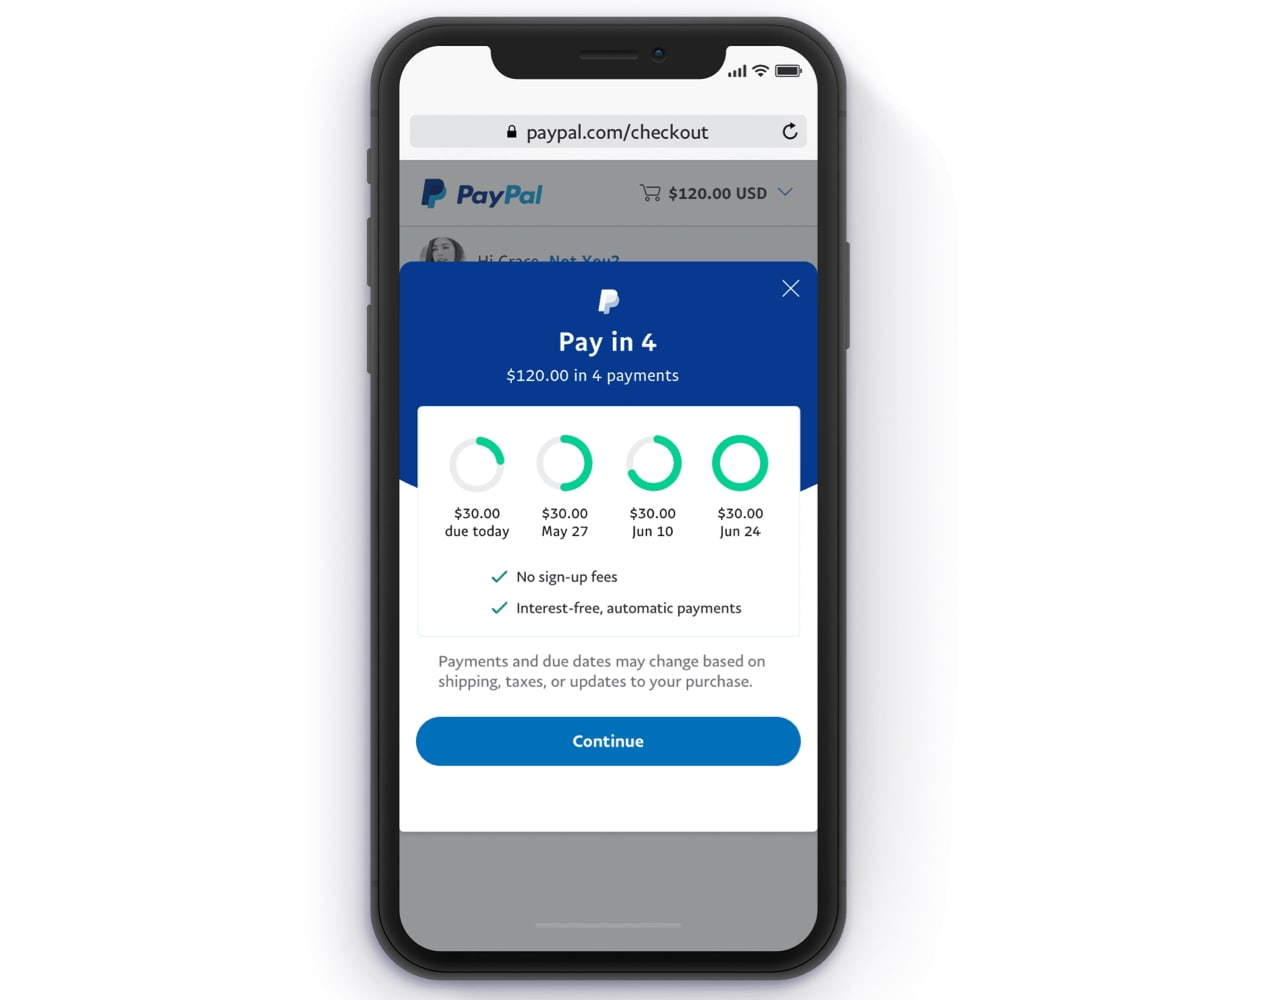 PayPal Pay in 4 on a mobile screen